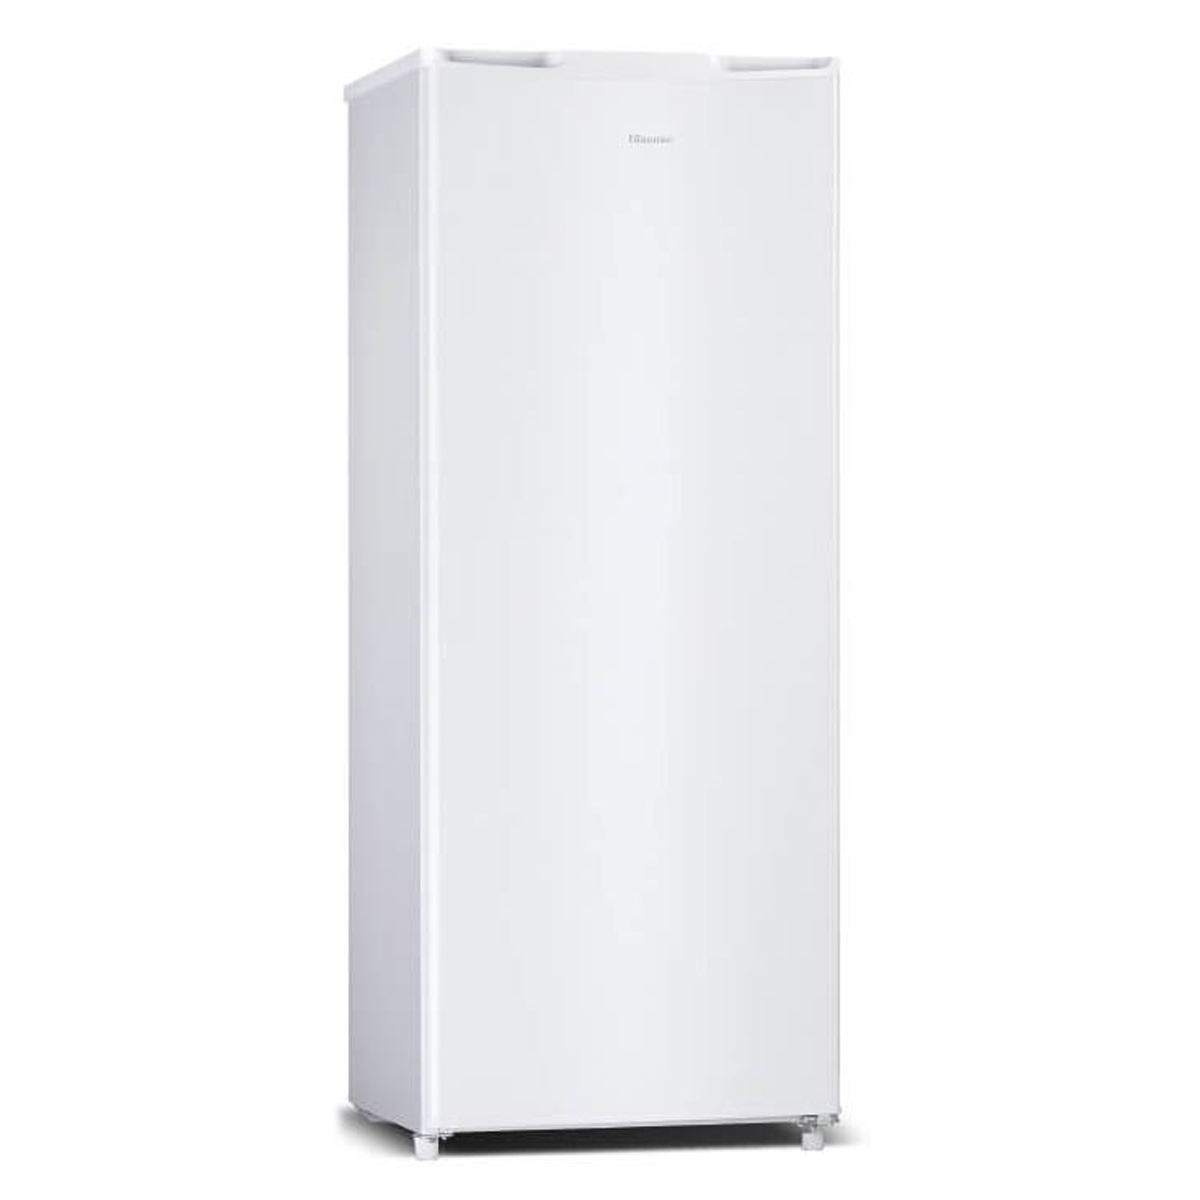 Hisense HR6AF243 243L Upright Fridge